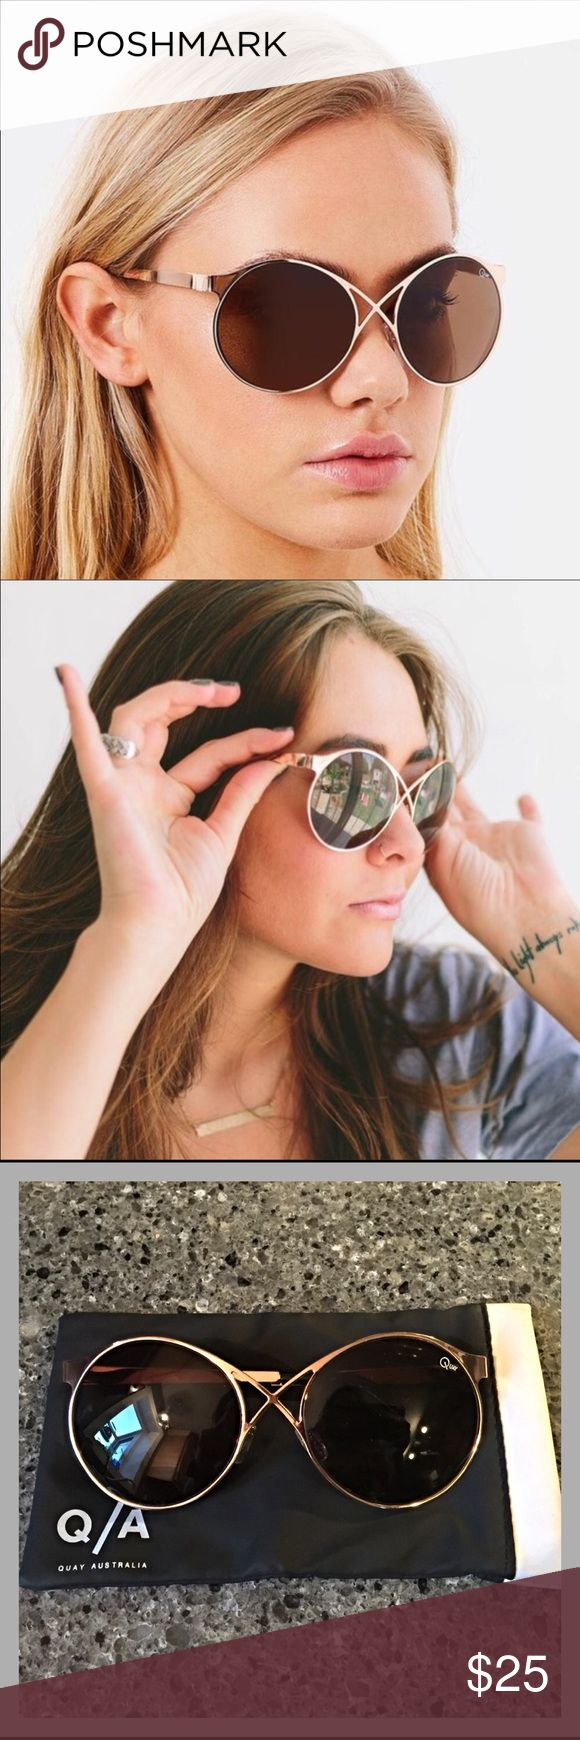 25+ best ideas about Sunglasses for small faces on ...